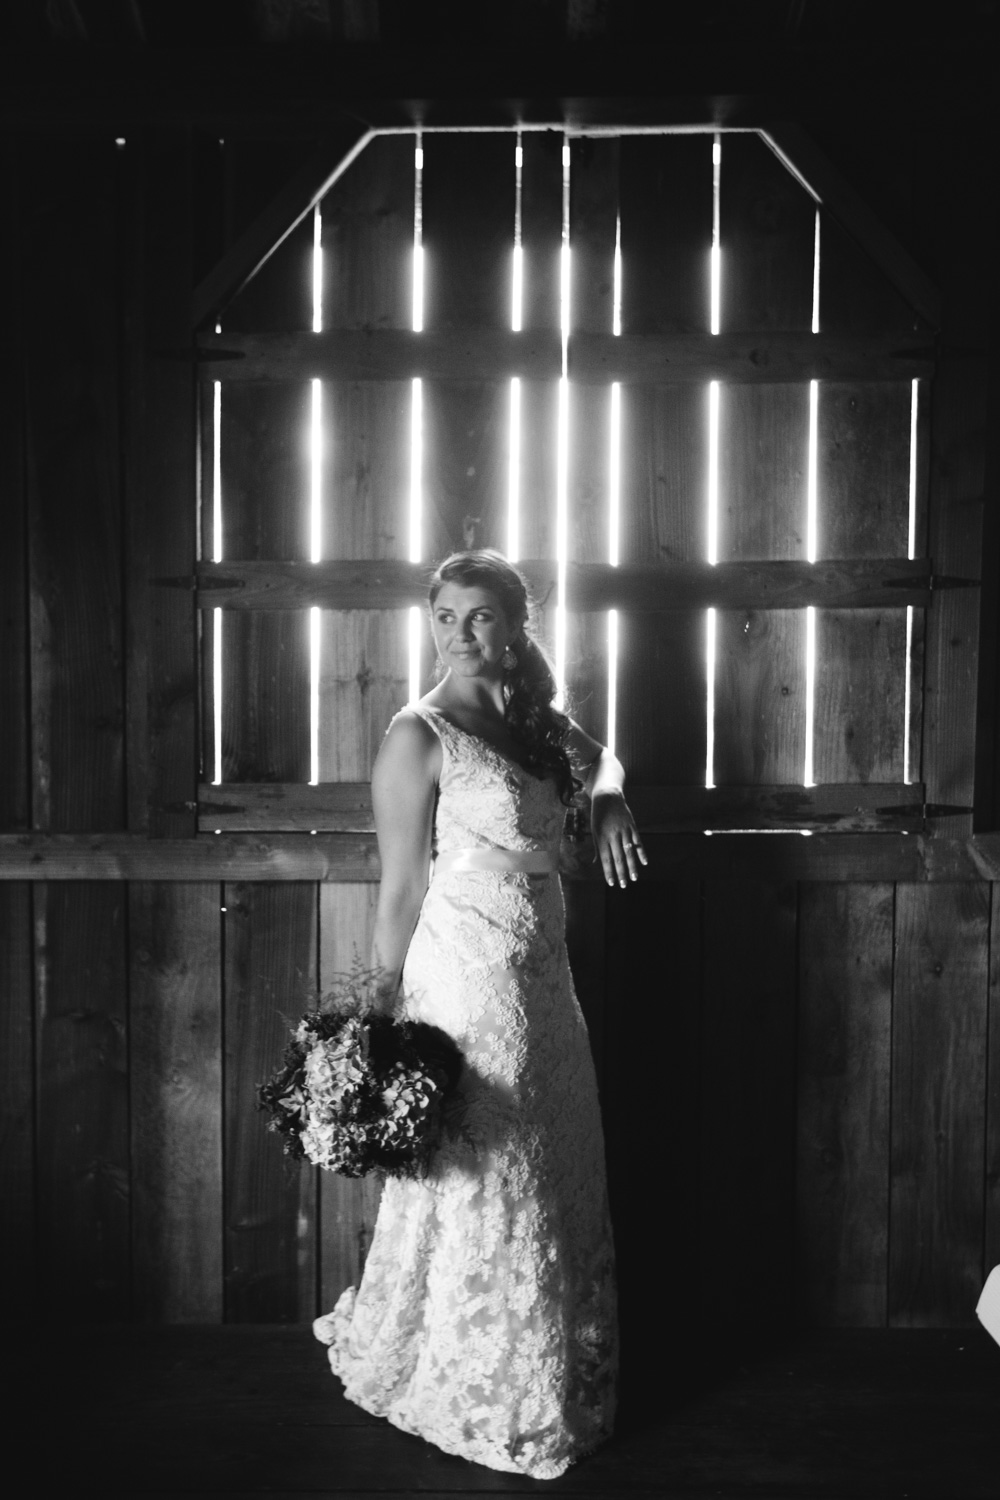 Dallas Oregon Wedding Photography Focal Point Studios-125.jpg